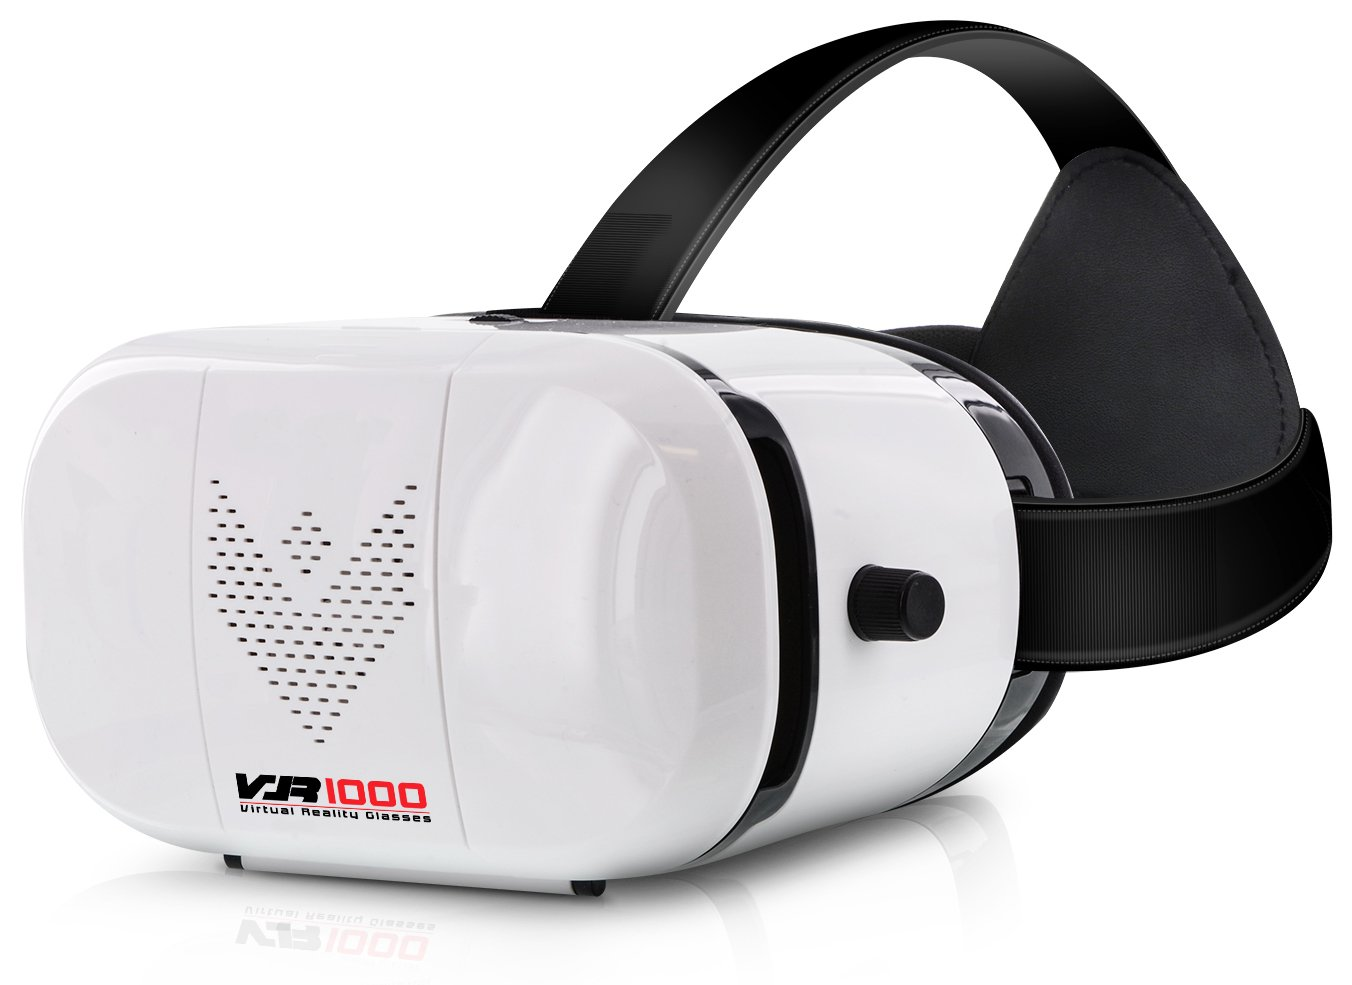 Aduro VR1000 3D Virtual Reality Glasses Headset, Suitable for 4.7-6.0 in Smartphones for Movies/Games/Viewing w/360 ° Panoramic Viewing Angle